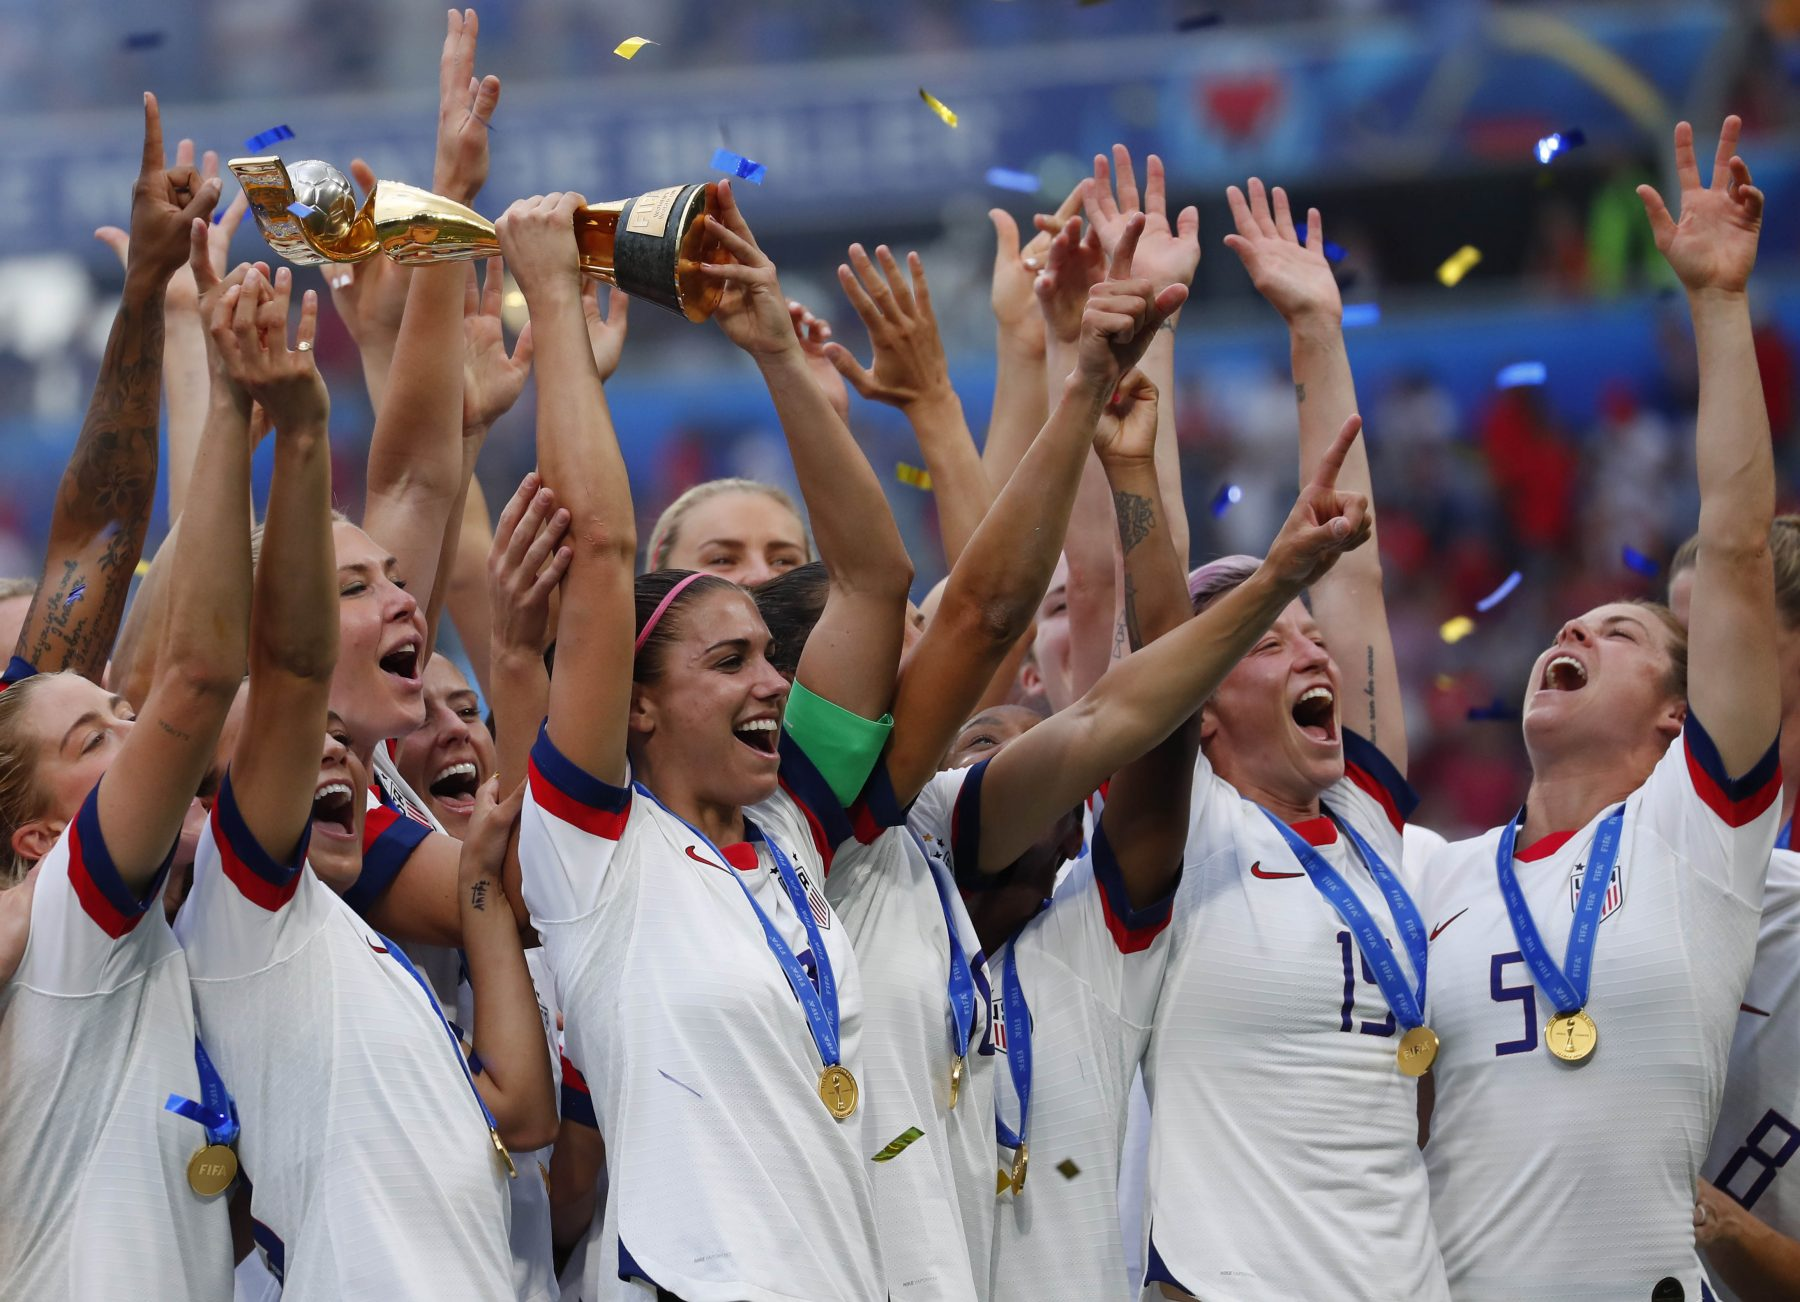 The United States women's soccer team